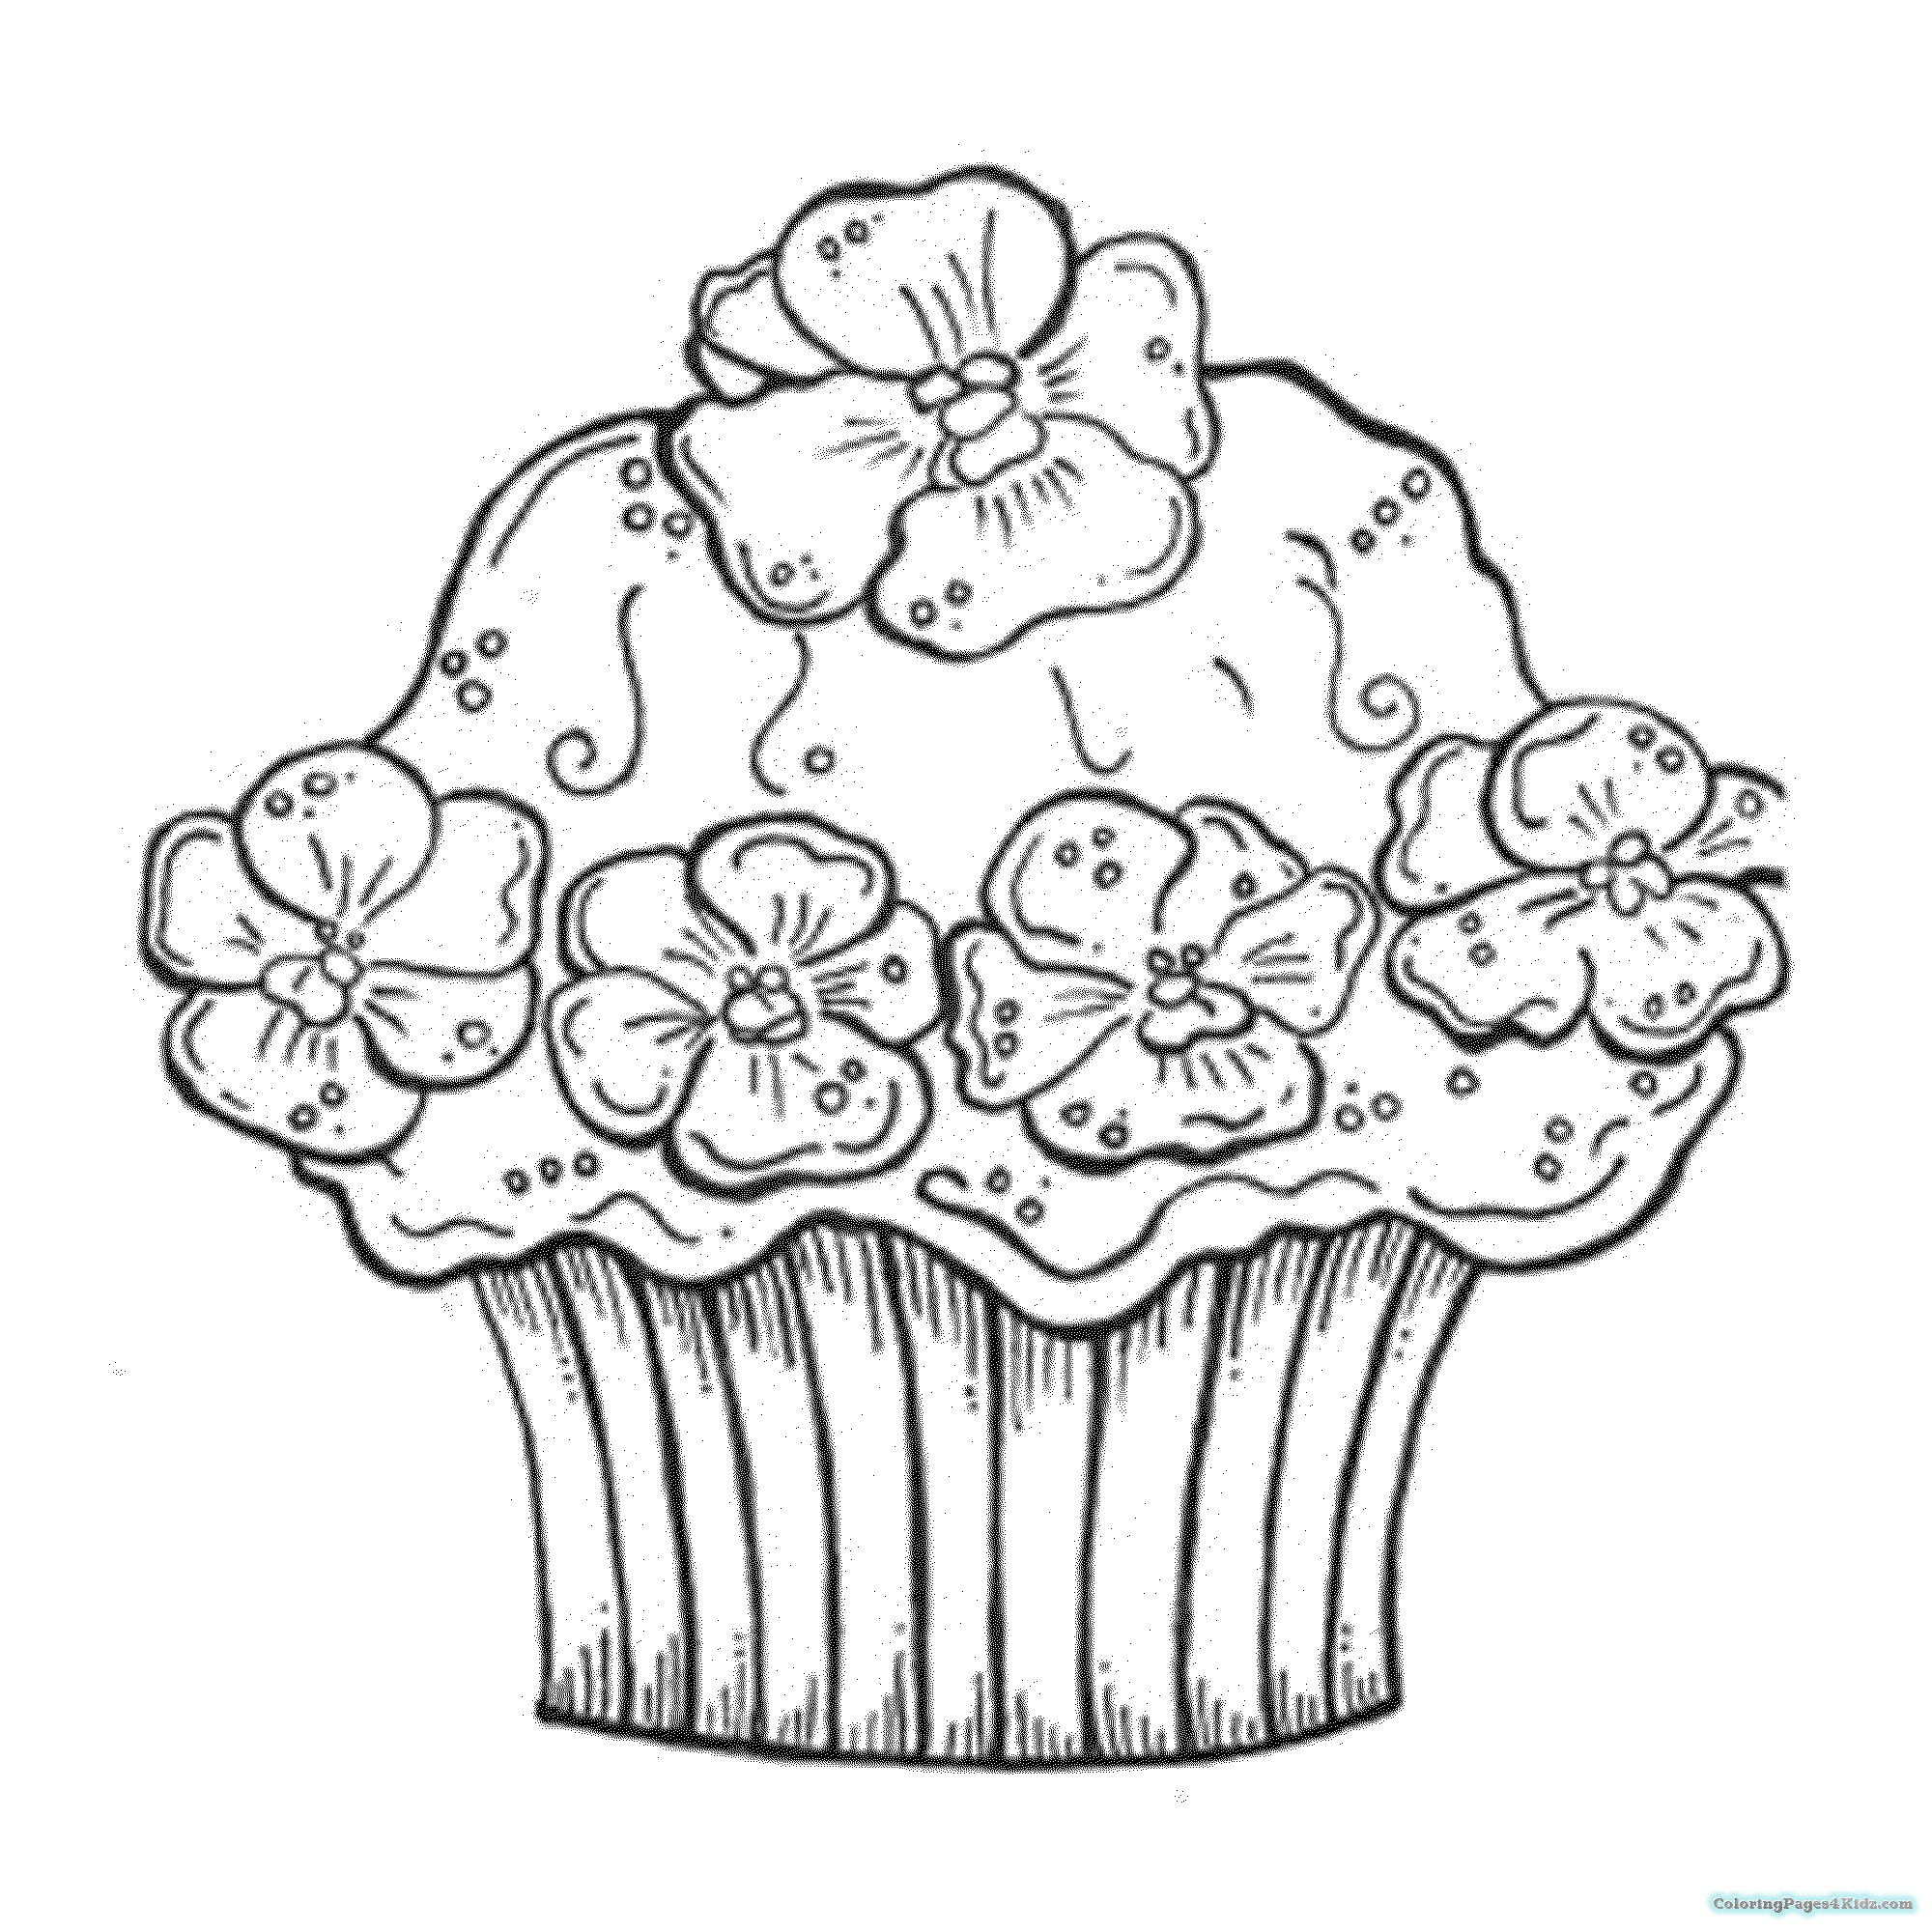 coloring pages cupcakes cupcakes netart part 2 coloring cupcakes pages